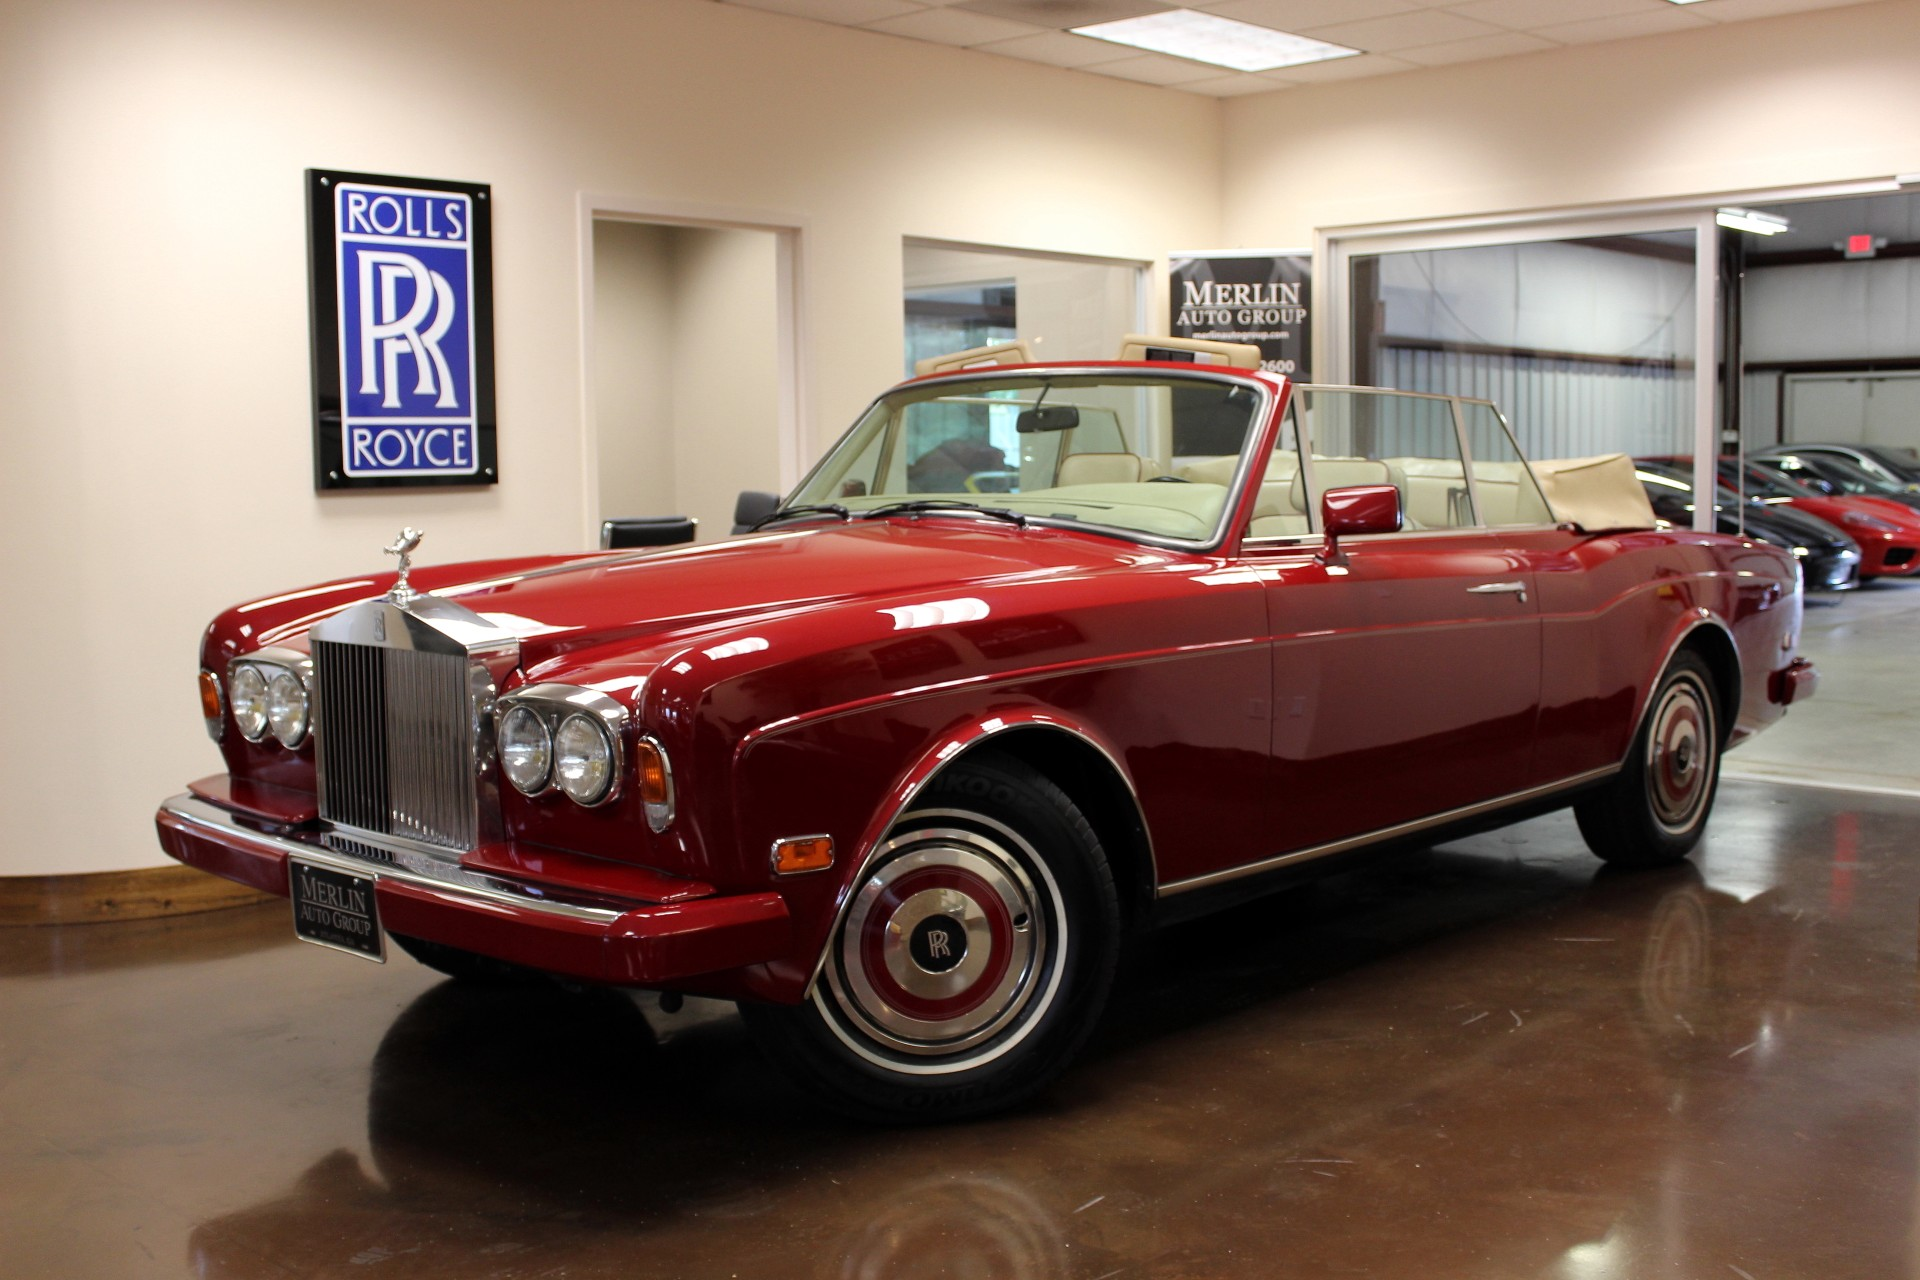 Sell Used Tires >> Used 1987 Rolls-Royce Corniche II stock P2765 - Ultra Luxury Car from Merlin Auto Group